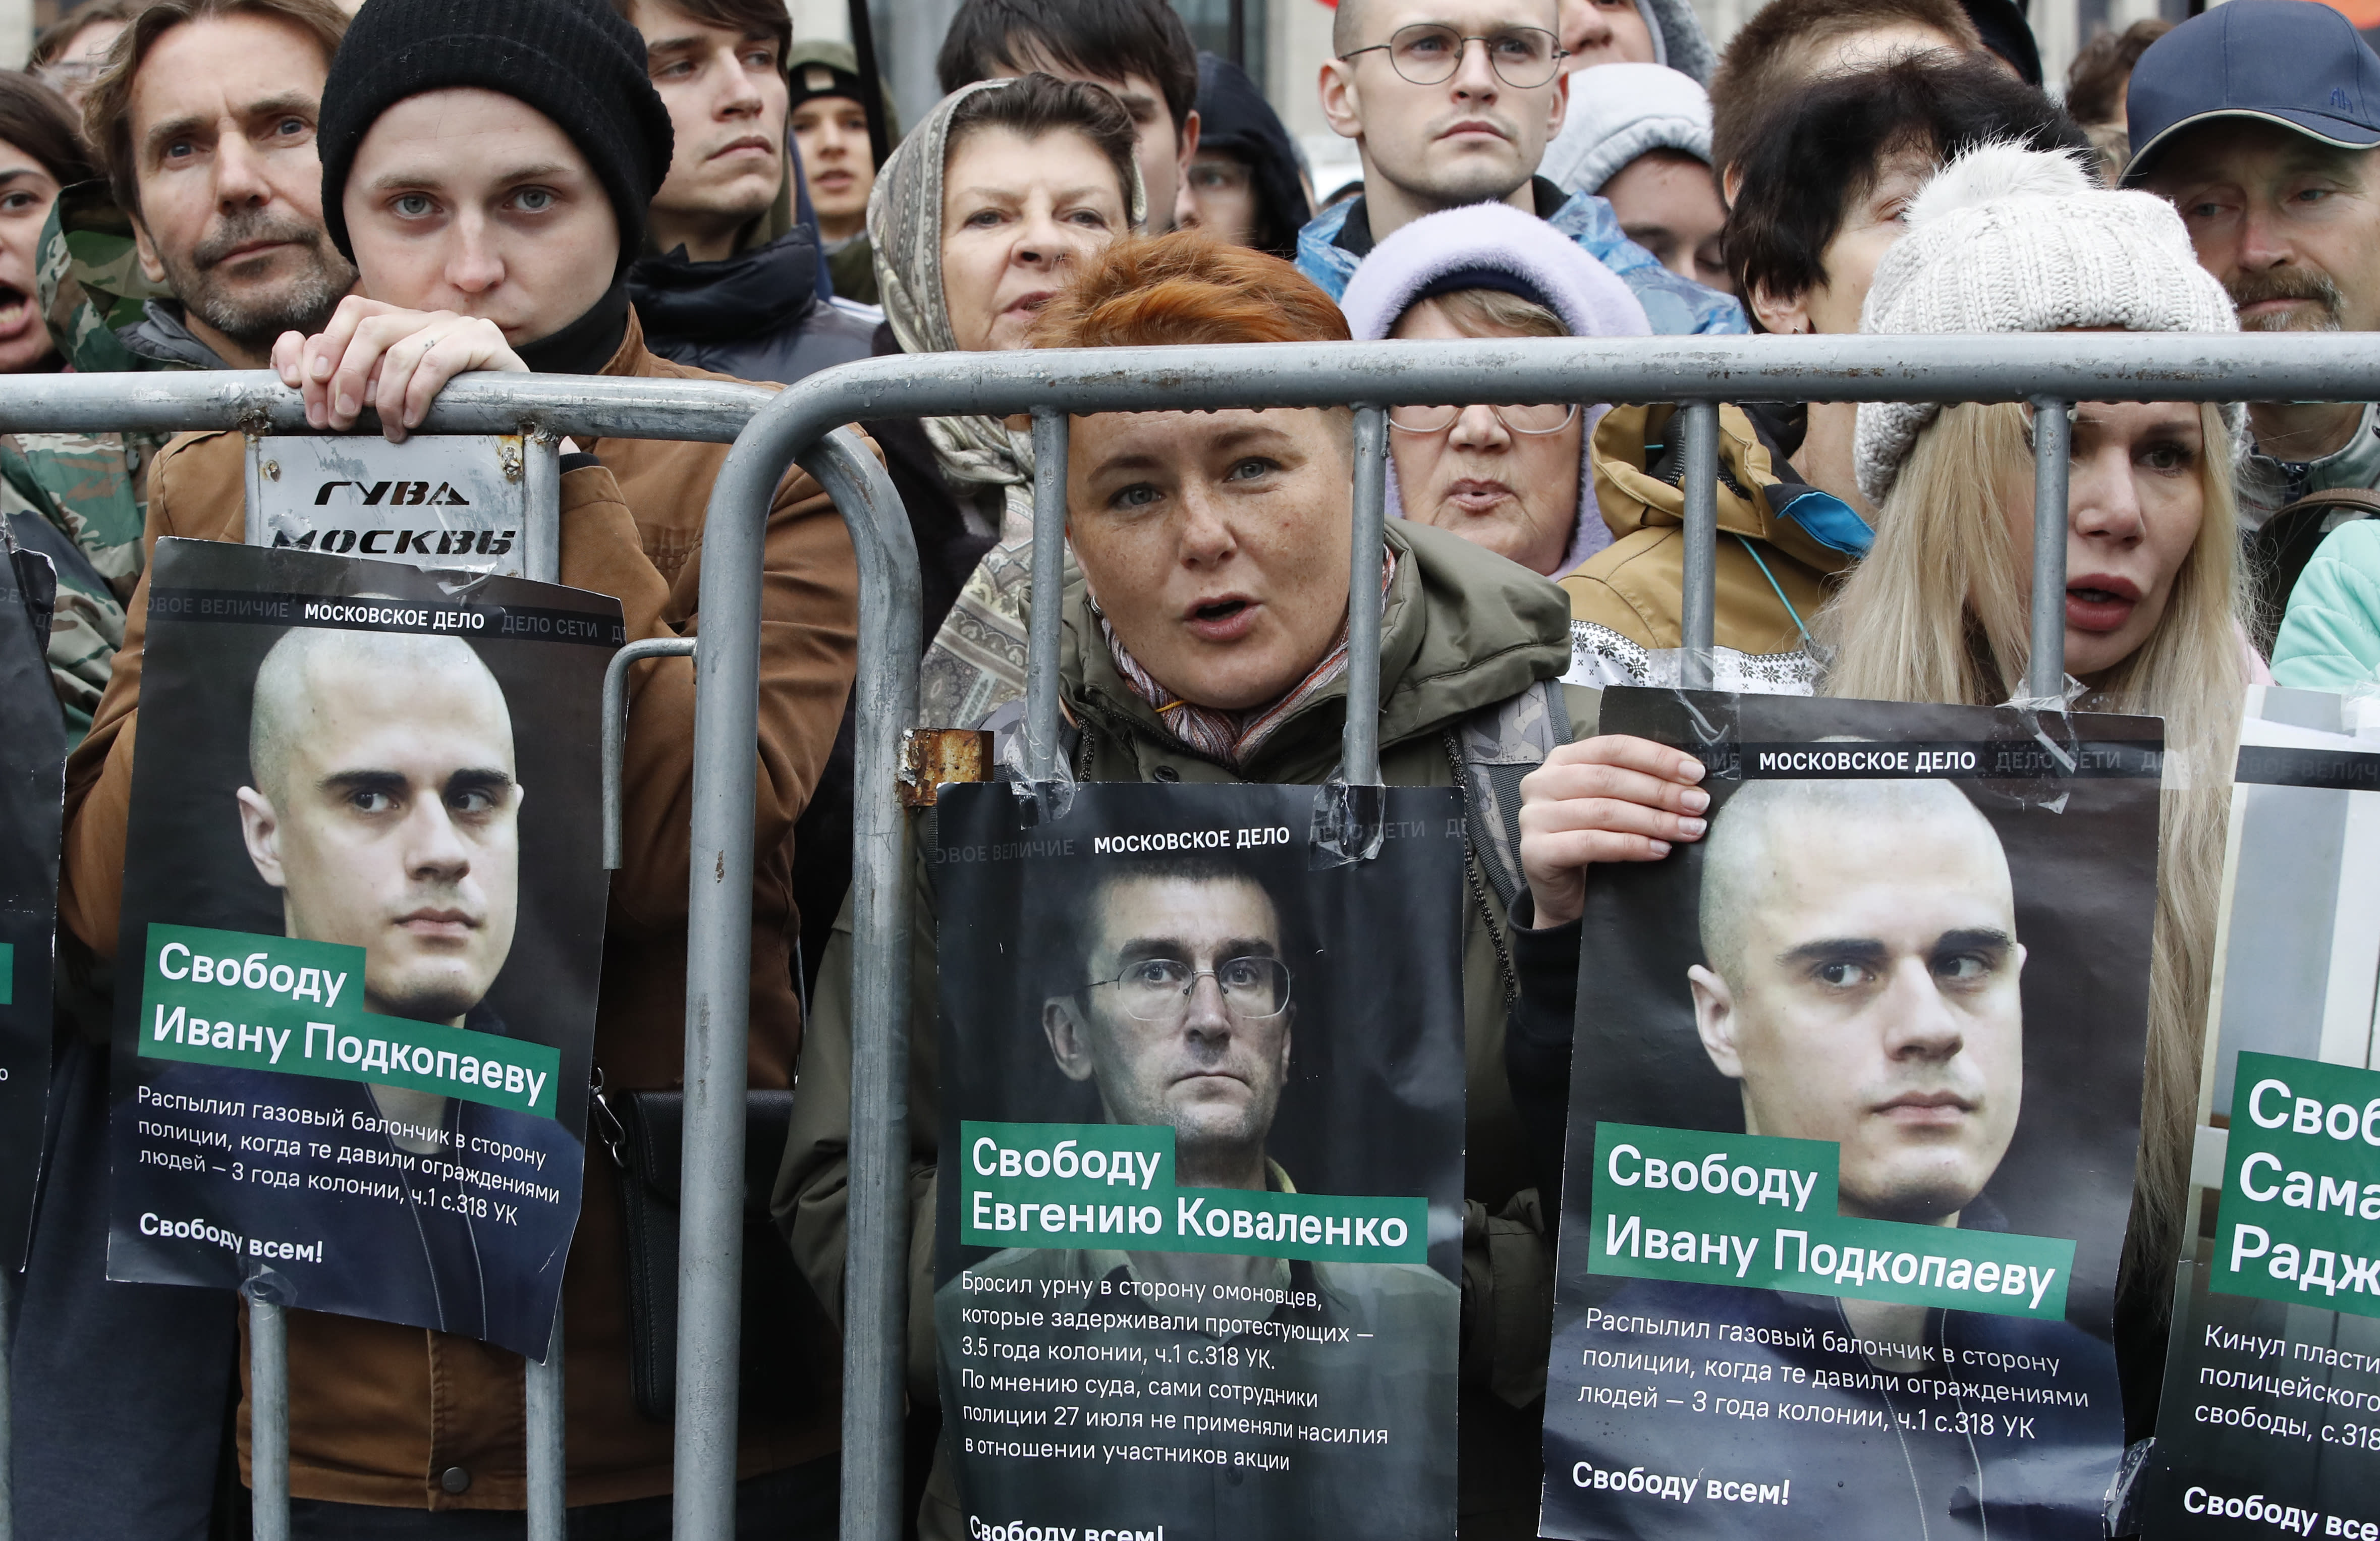 Moscow rally draws 9,000 people: protest monitor